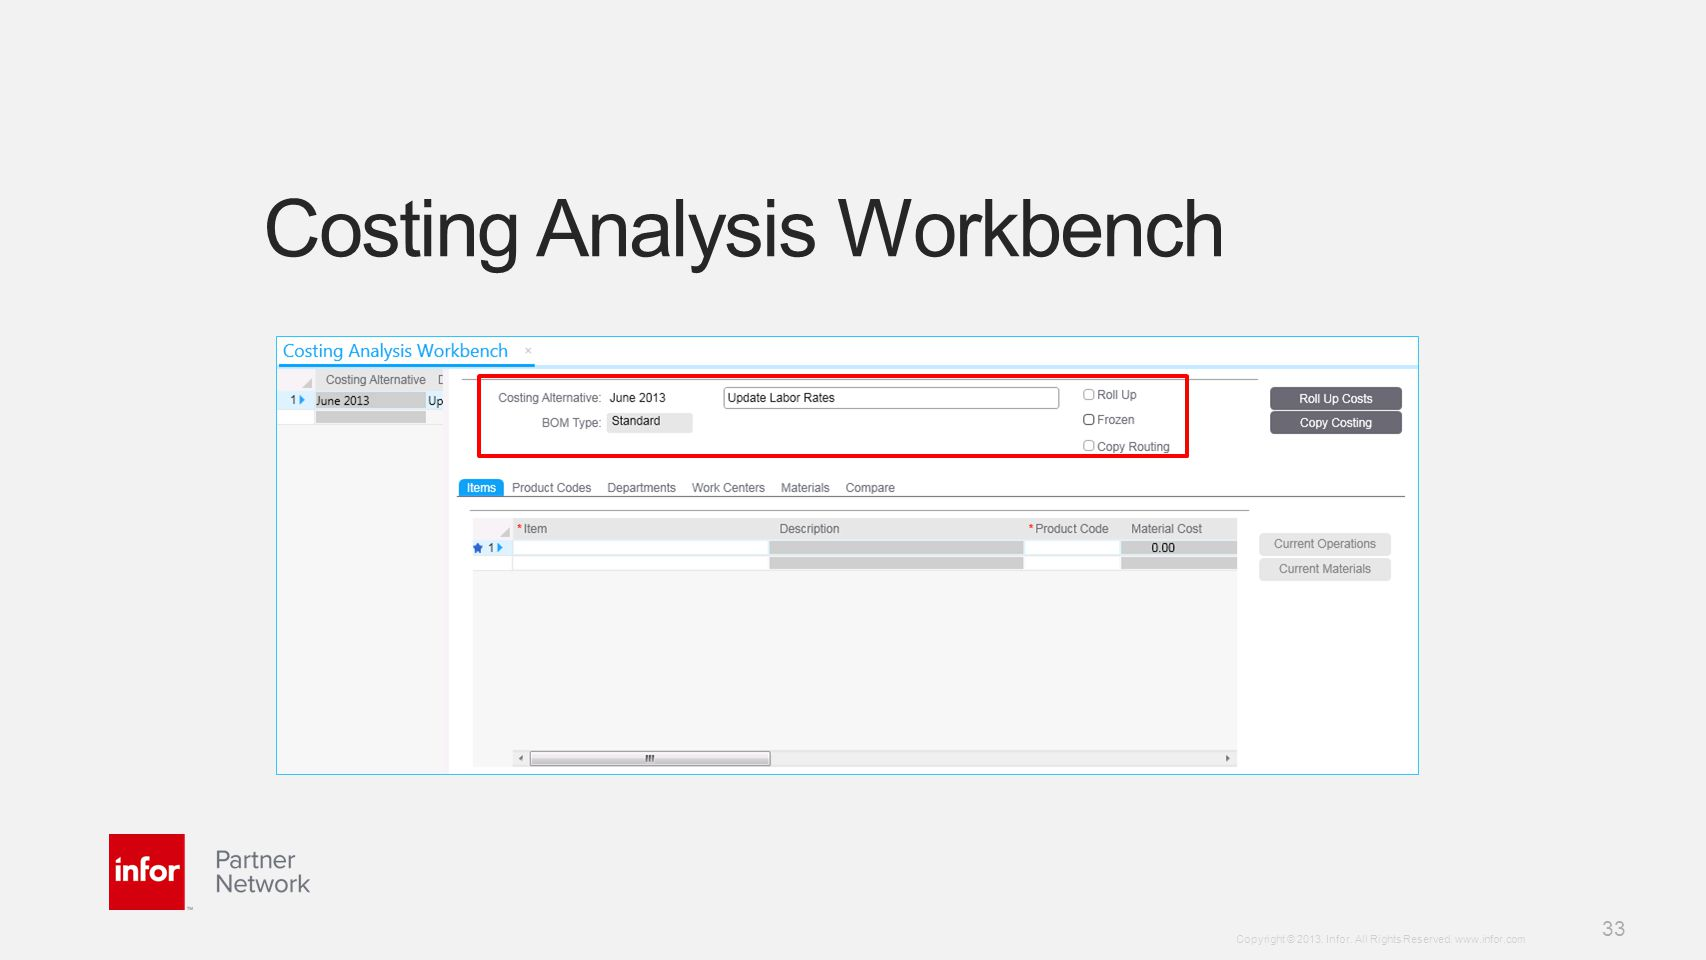 Costing Analysis Workbench